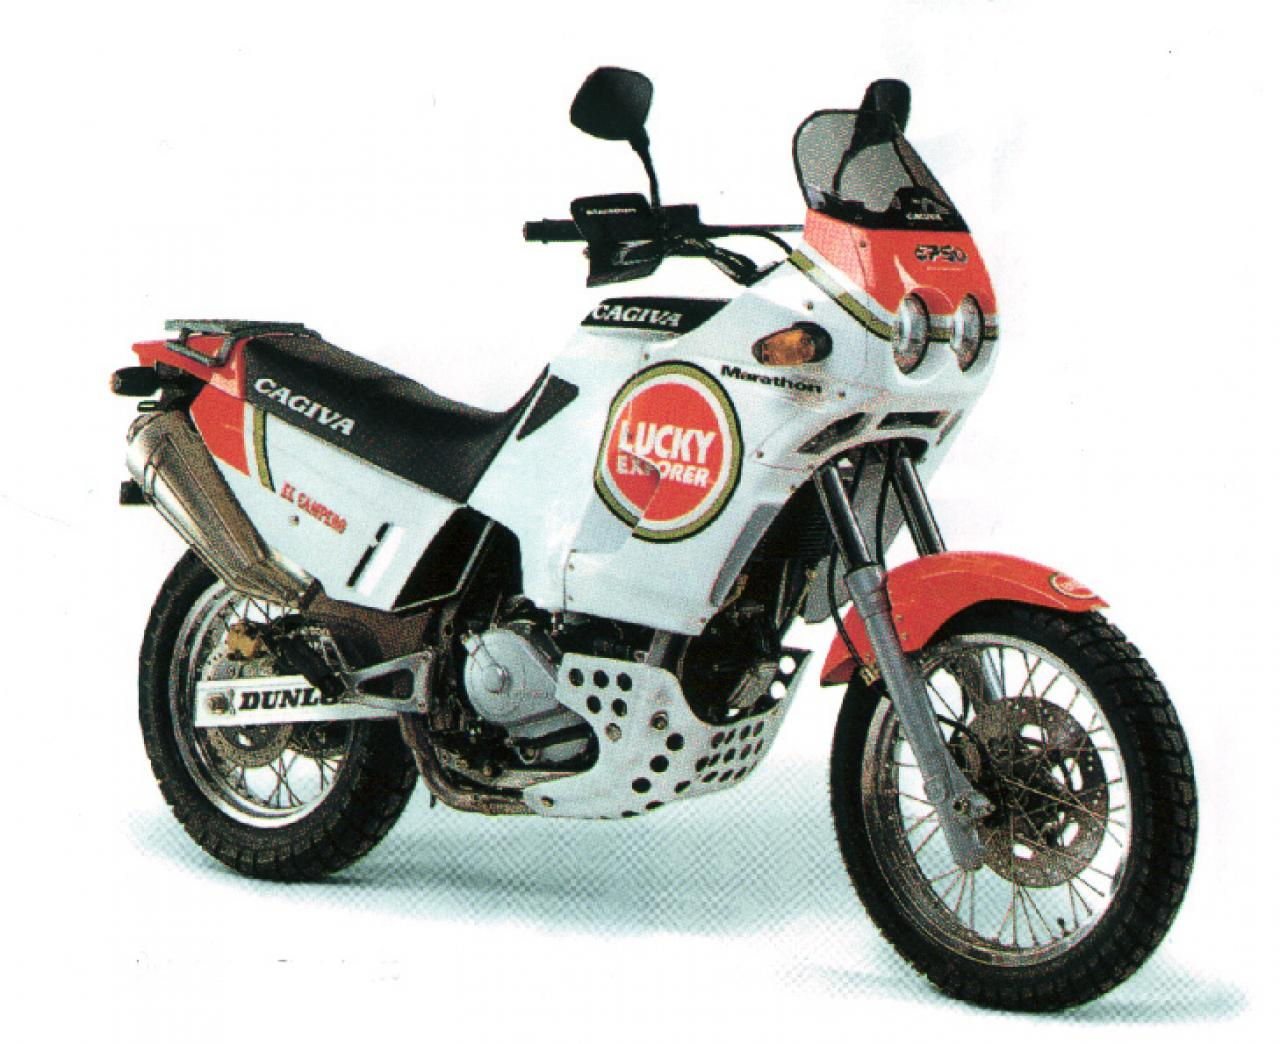 Cagiva Elefant 900 IE GT 1993 images #153445